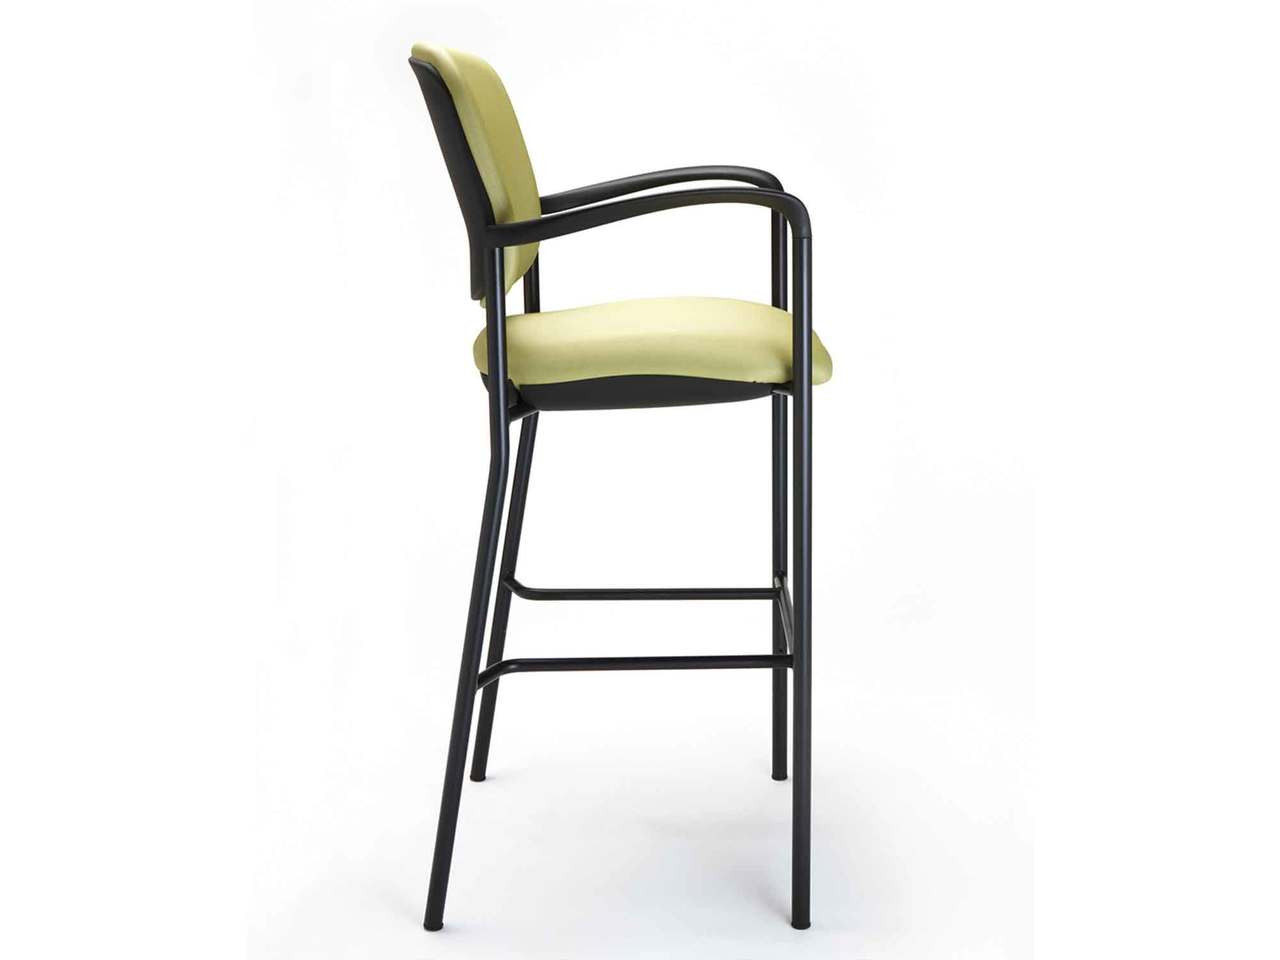 united chair medical stool tommy bahama cooler brylee office furniture warehouse